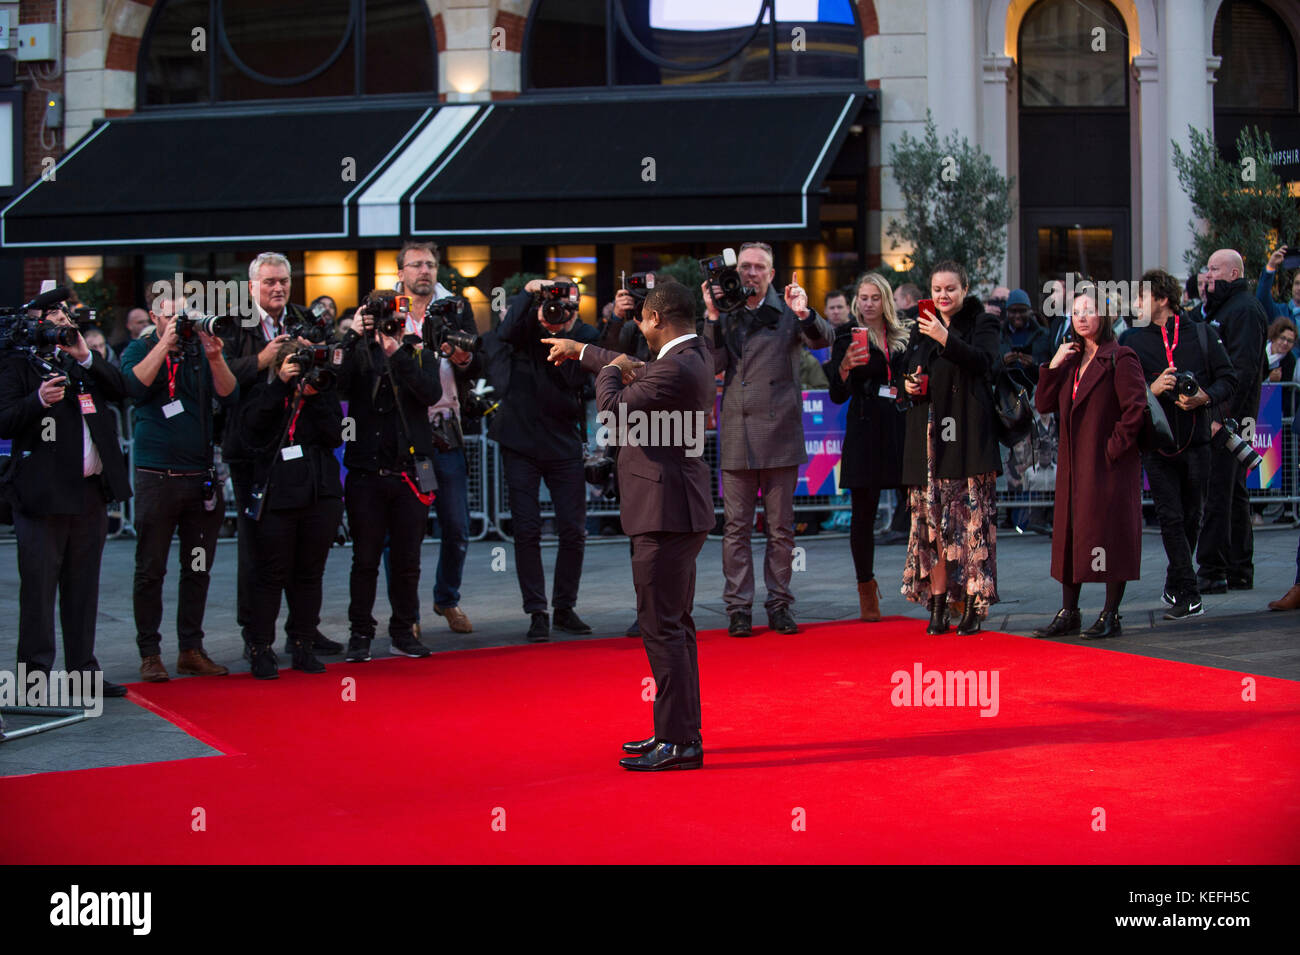 London.UK. Jason Mitchell alla Royal Bank of Canada Gala & European Premiere of 'Mudbound'. 61st BFI London Film Festival 5th Ottobre 2017 Ref:LMK386-S816-061017 Gary Mitchell/Landmark Media WWW.LMKMEDIA.COM Foto Stock